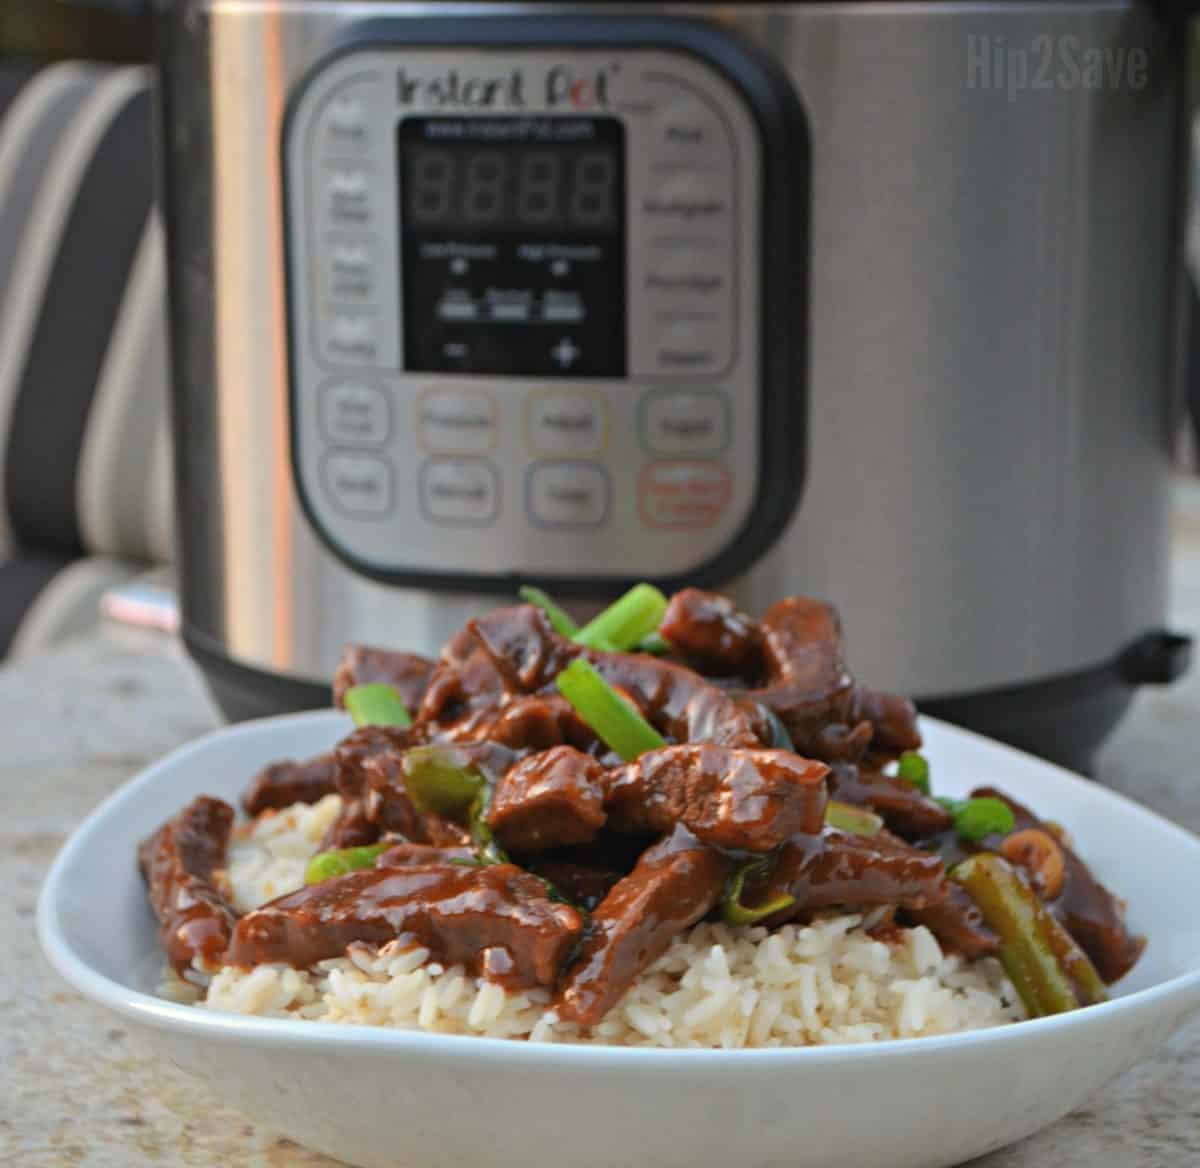 Mongolian Beef with rice and green vegetables.